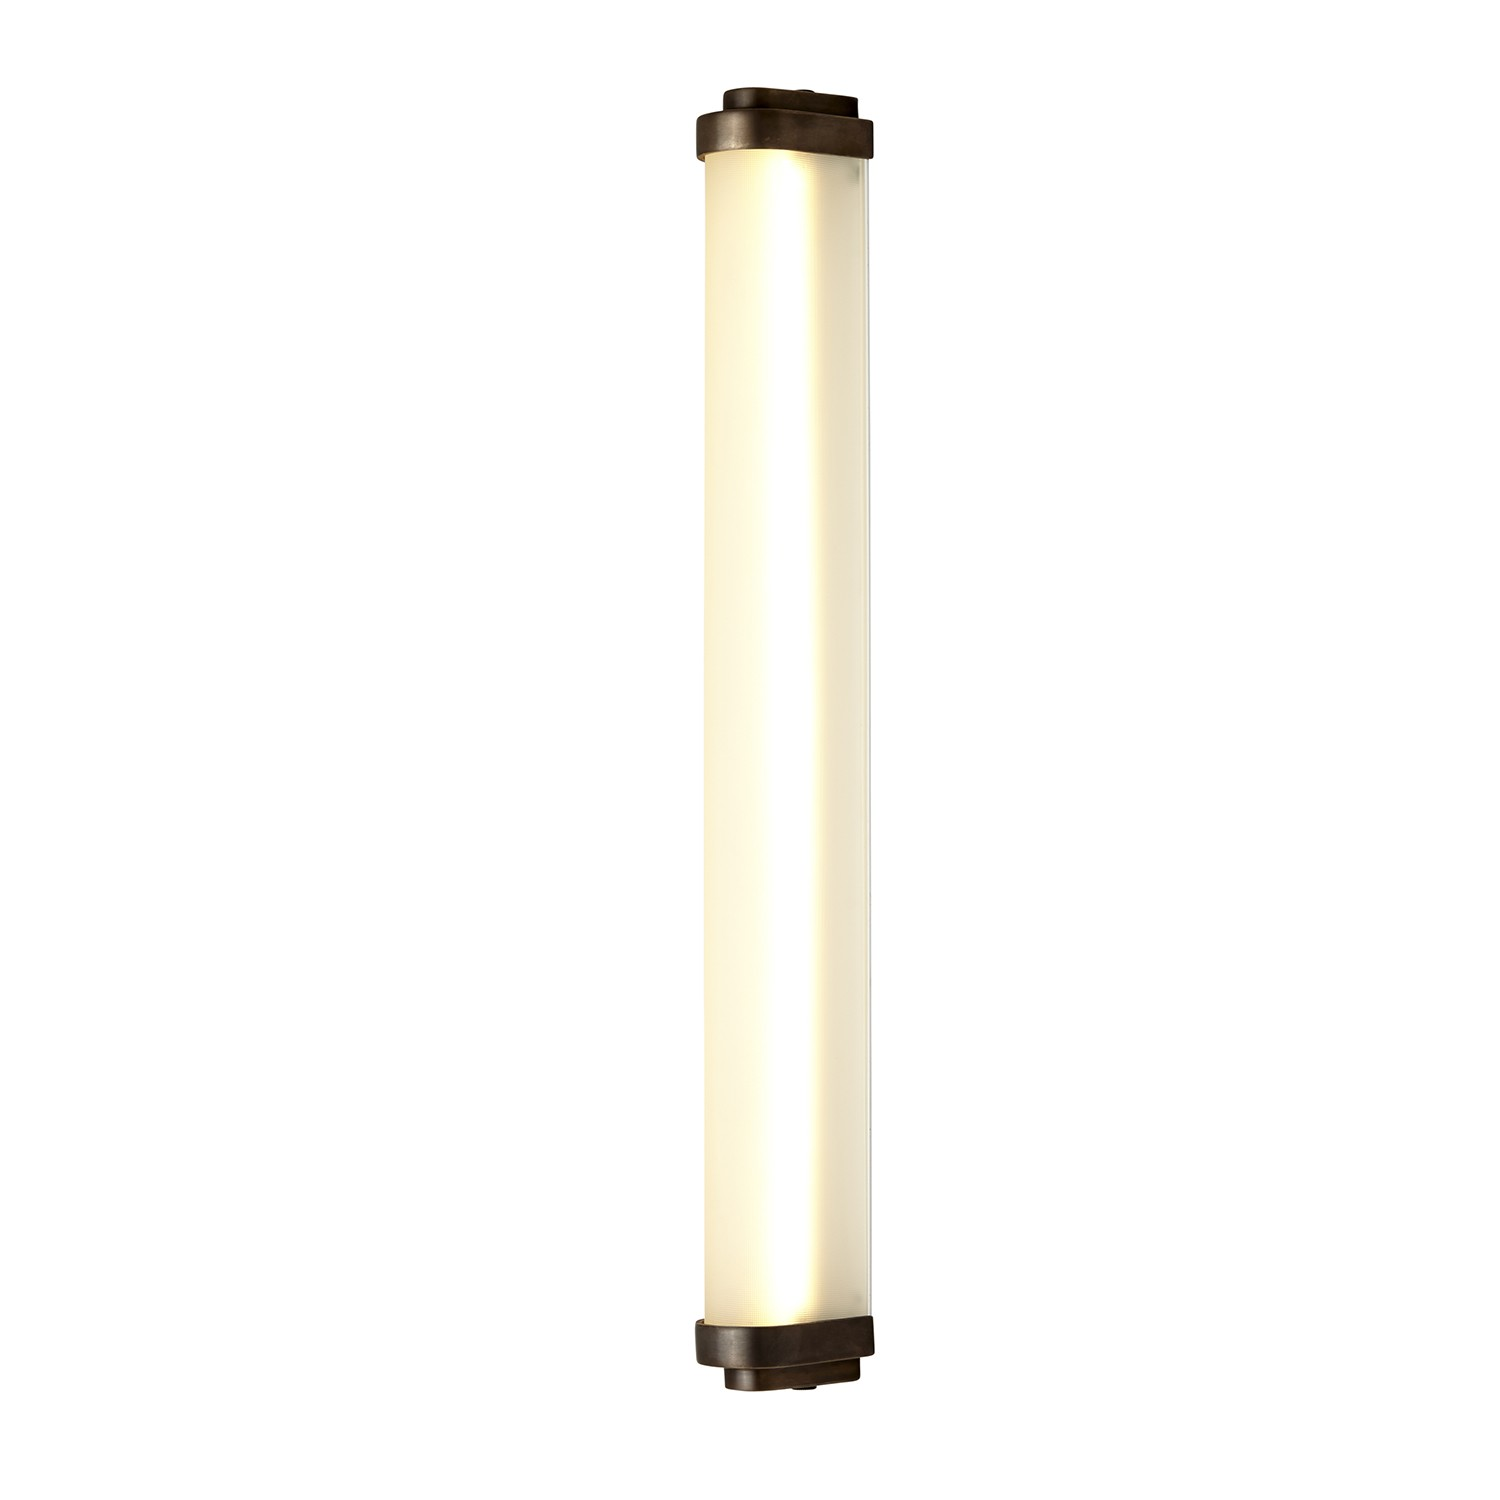 Cabin LED Wall Light Weathered Brass, 60cm